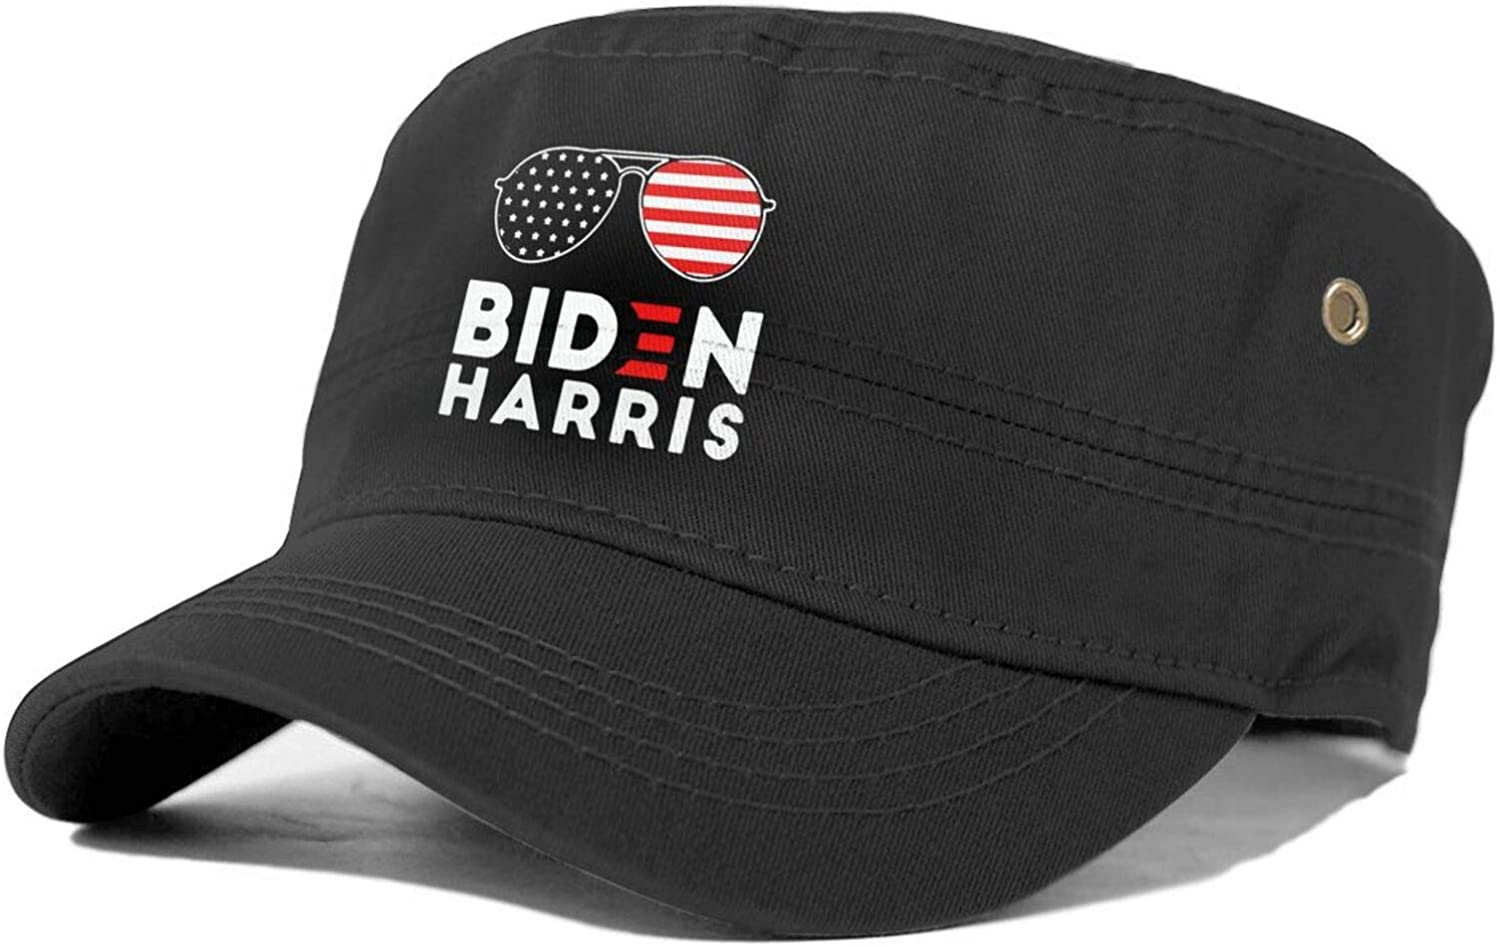 Biden Harris 2020 Sunglasses Cotton Cadet Army Military Cap Hats for Unisex Adult Military Style Hat